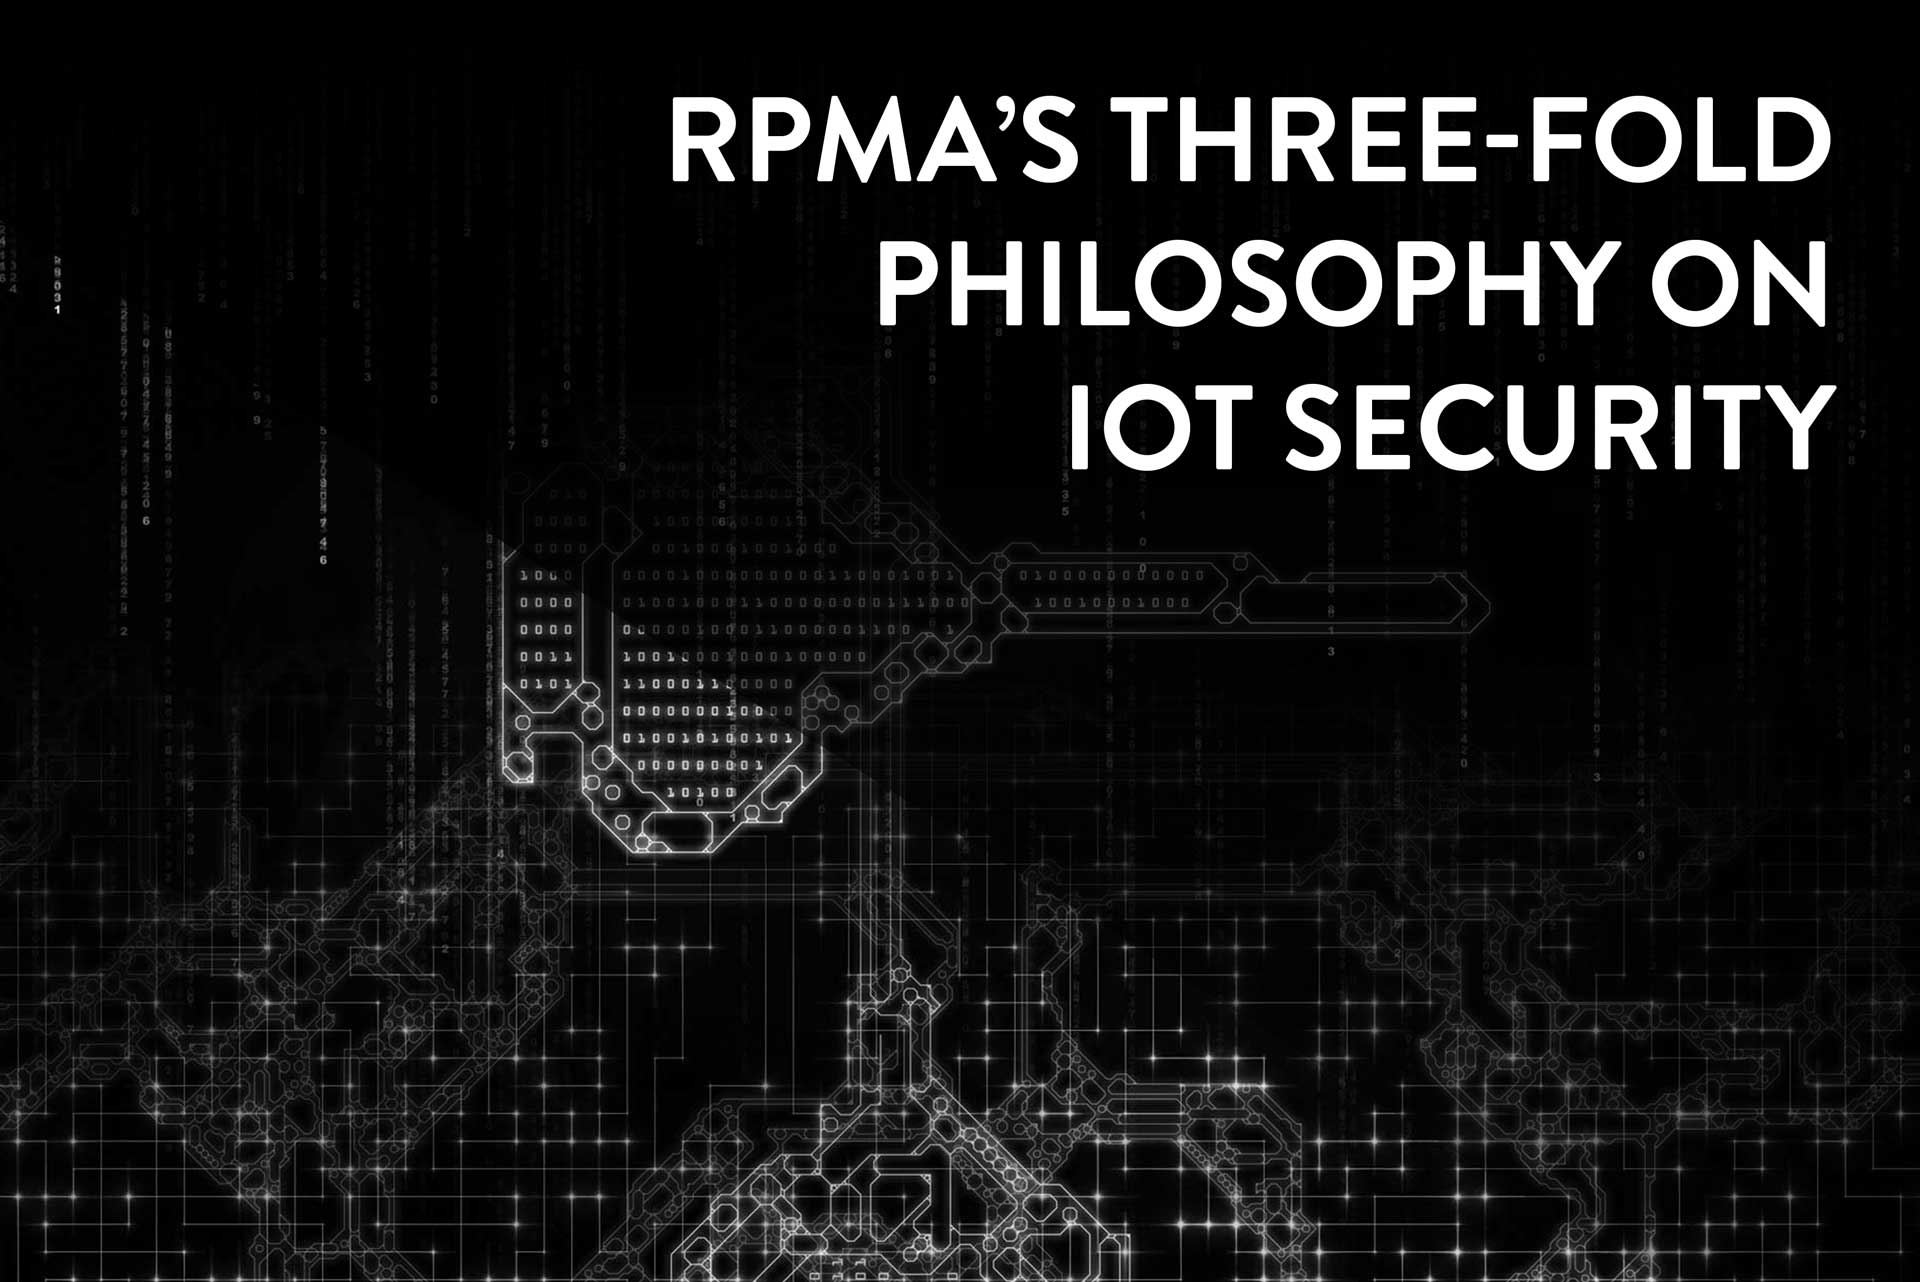 iot security philosophy